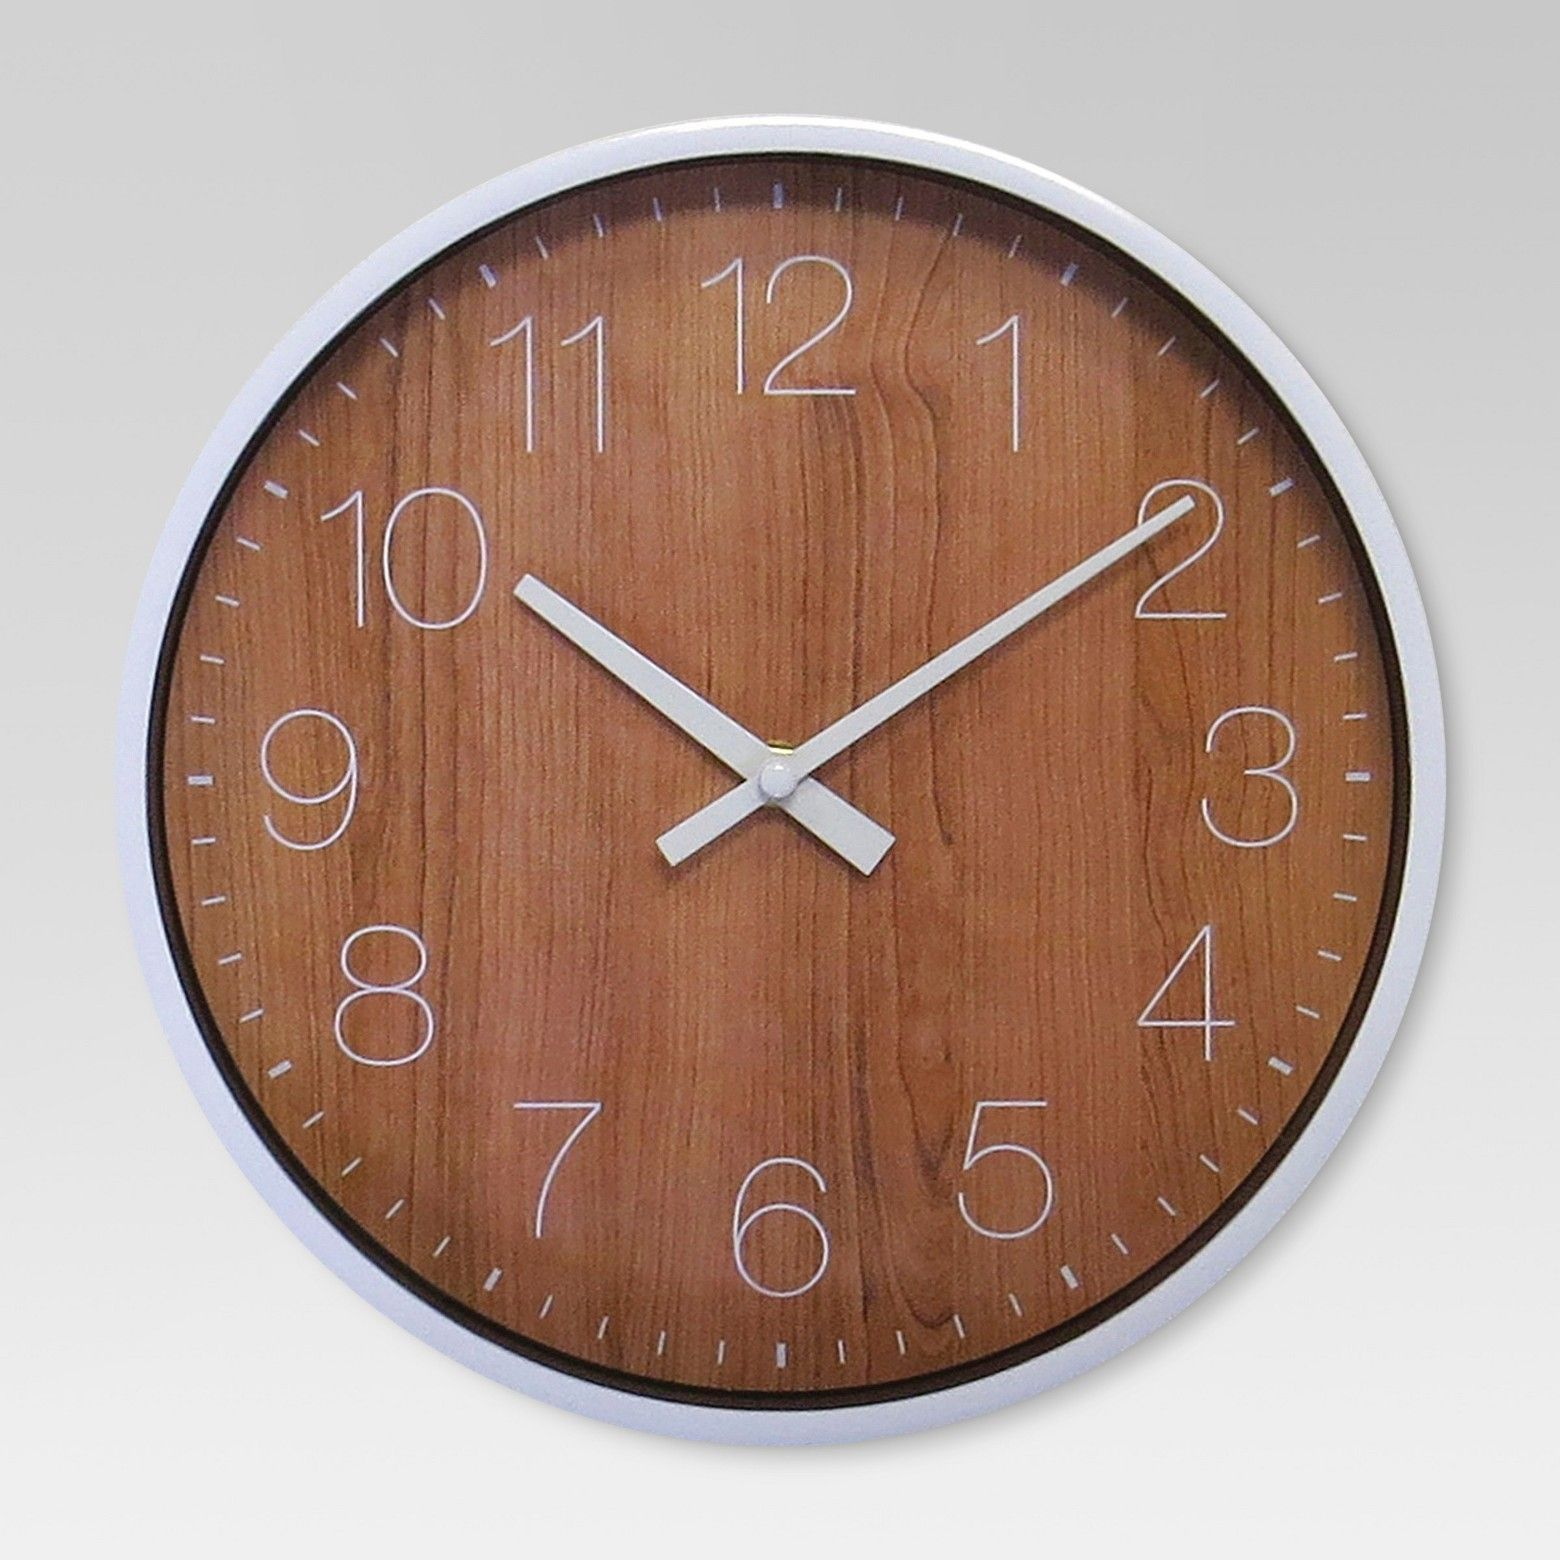 Home Goods Clocks: Accent Your Room With A Stylish And Practical, Room